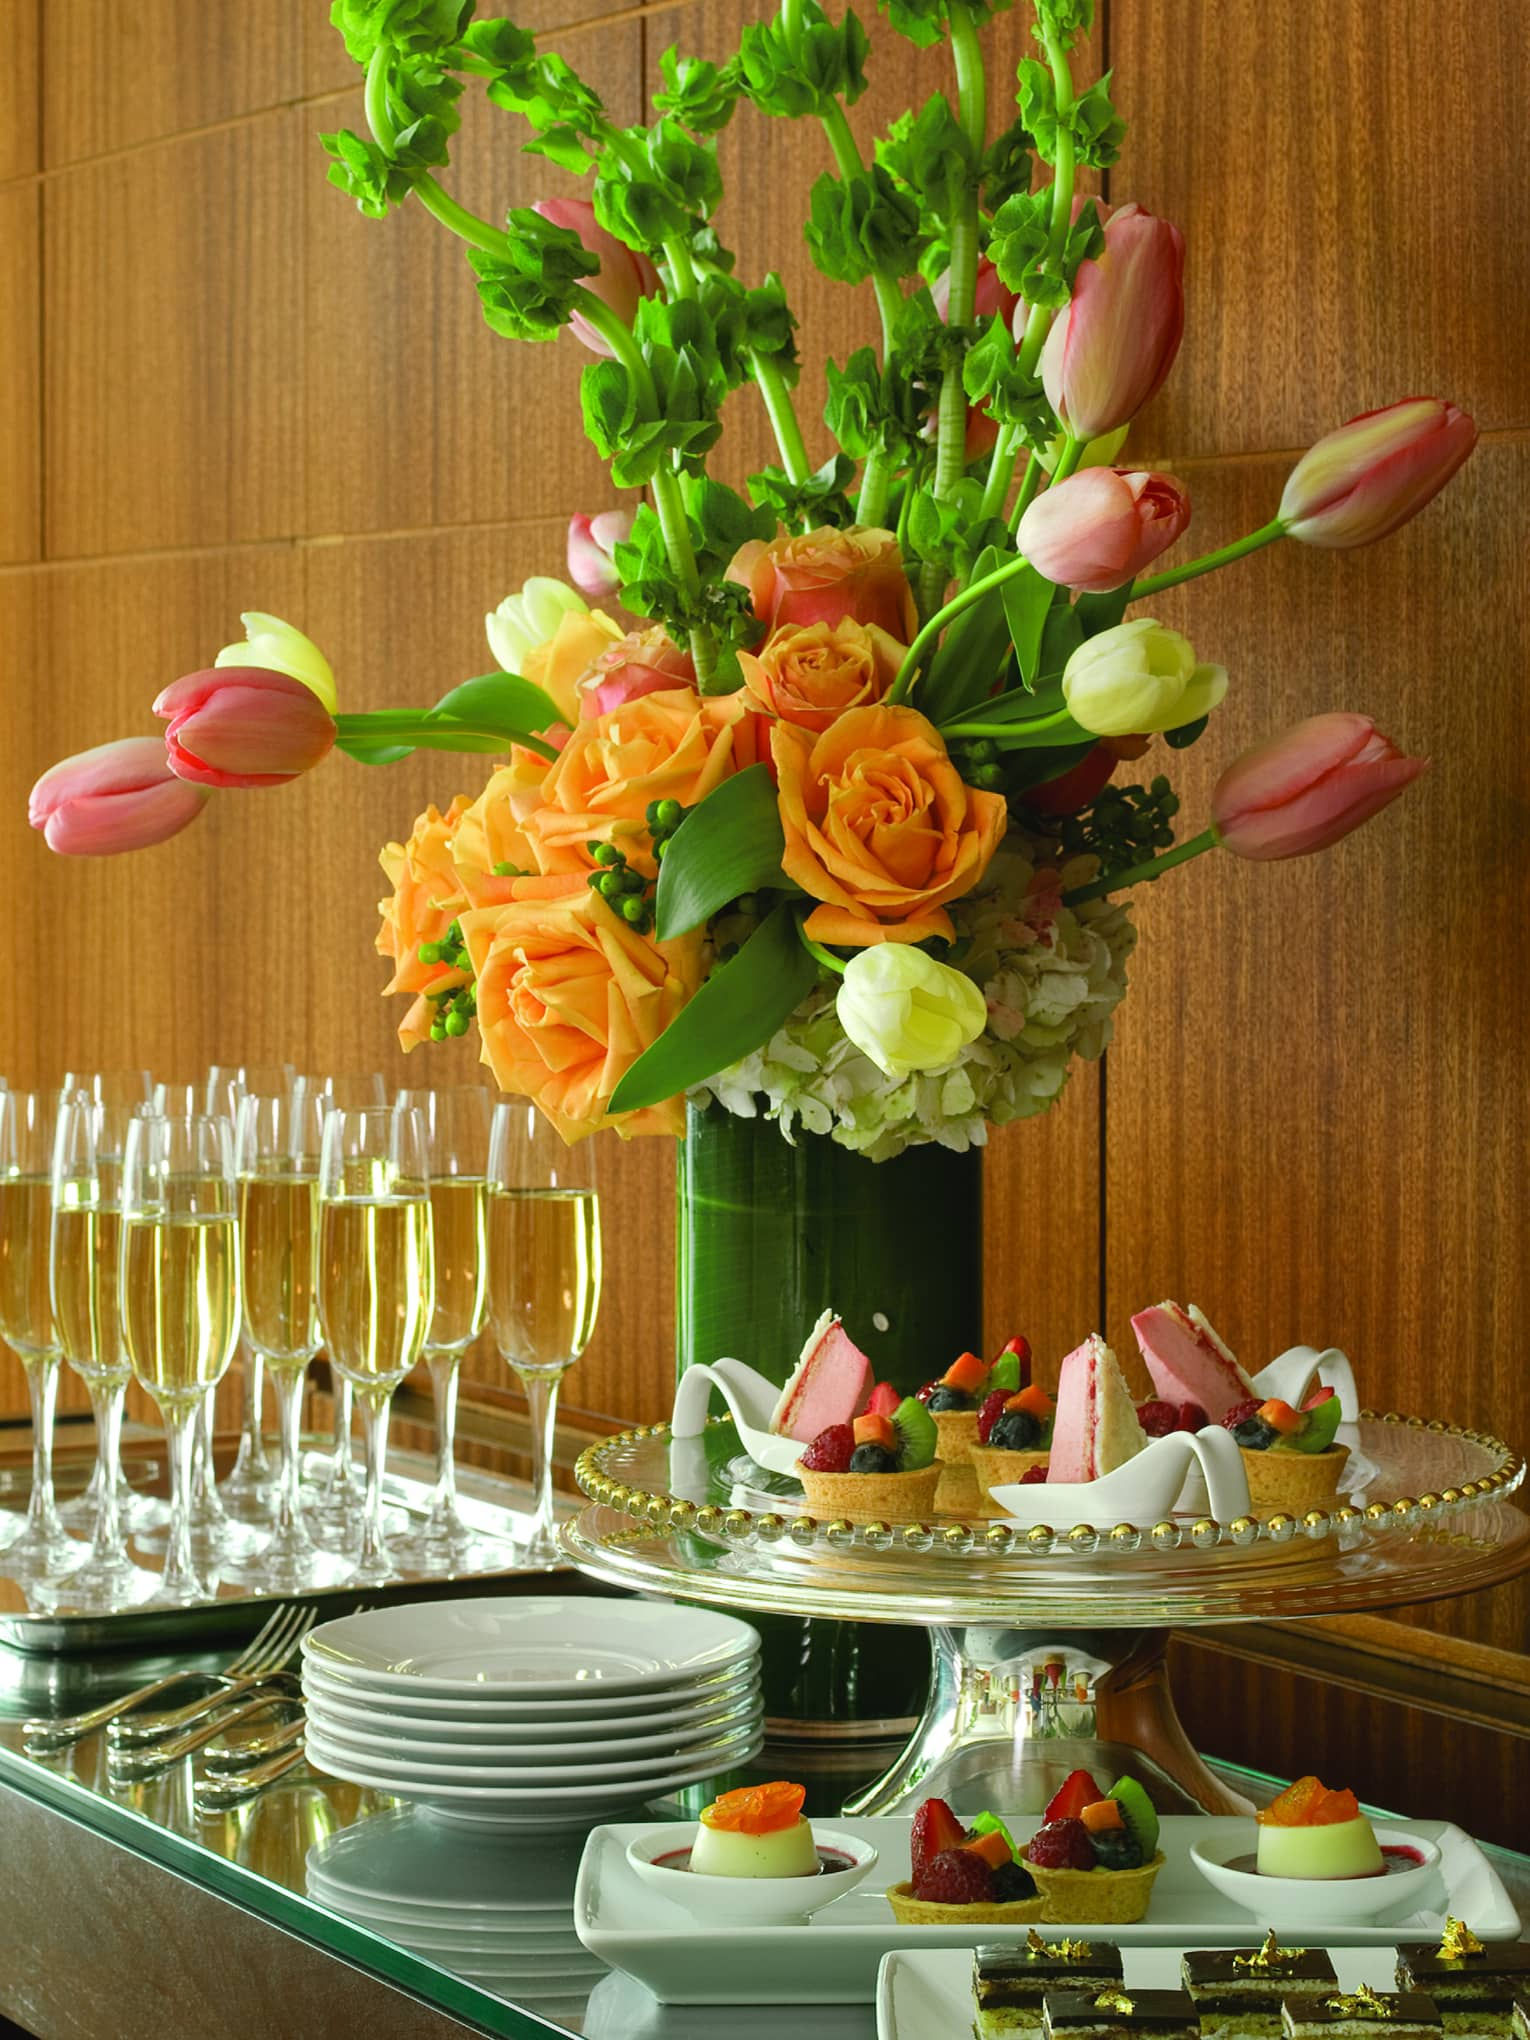 Intricate pastries, cakes and chocolates are arranged on a table next to a flower arrangement and champagne